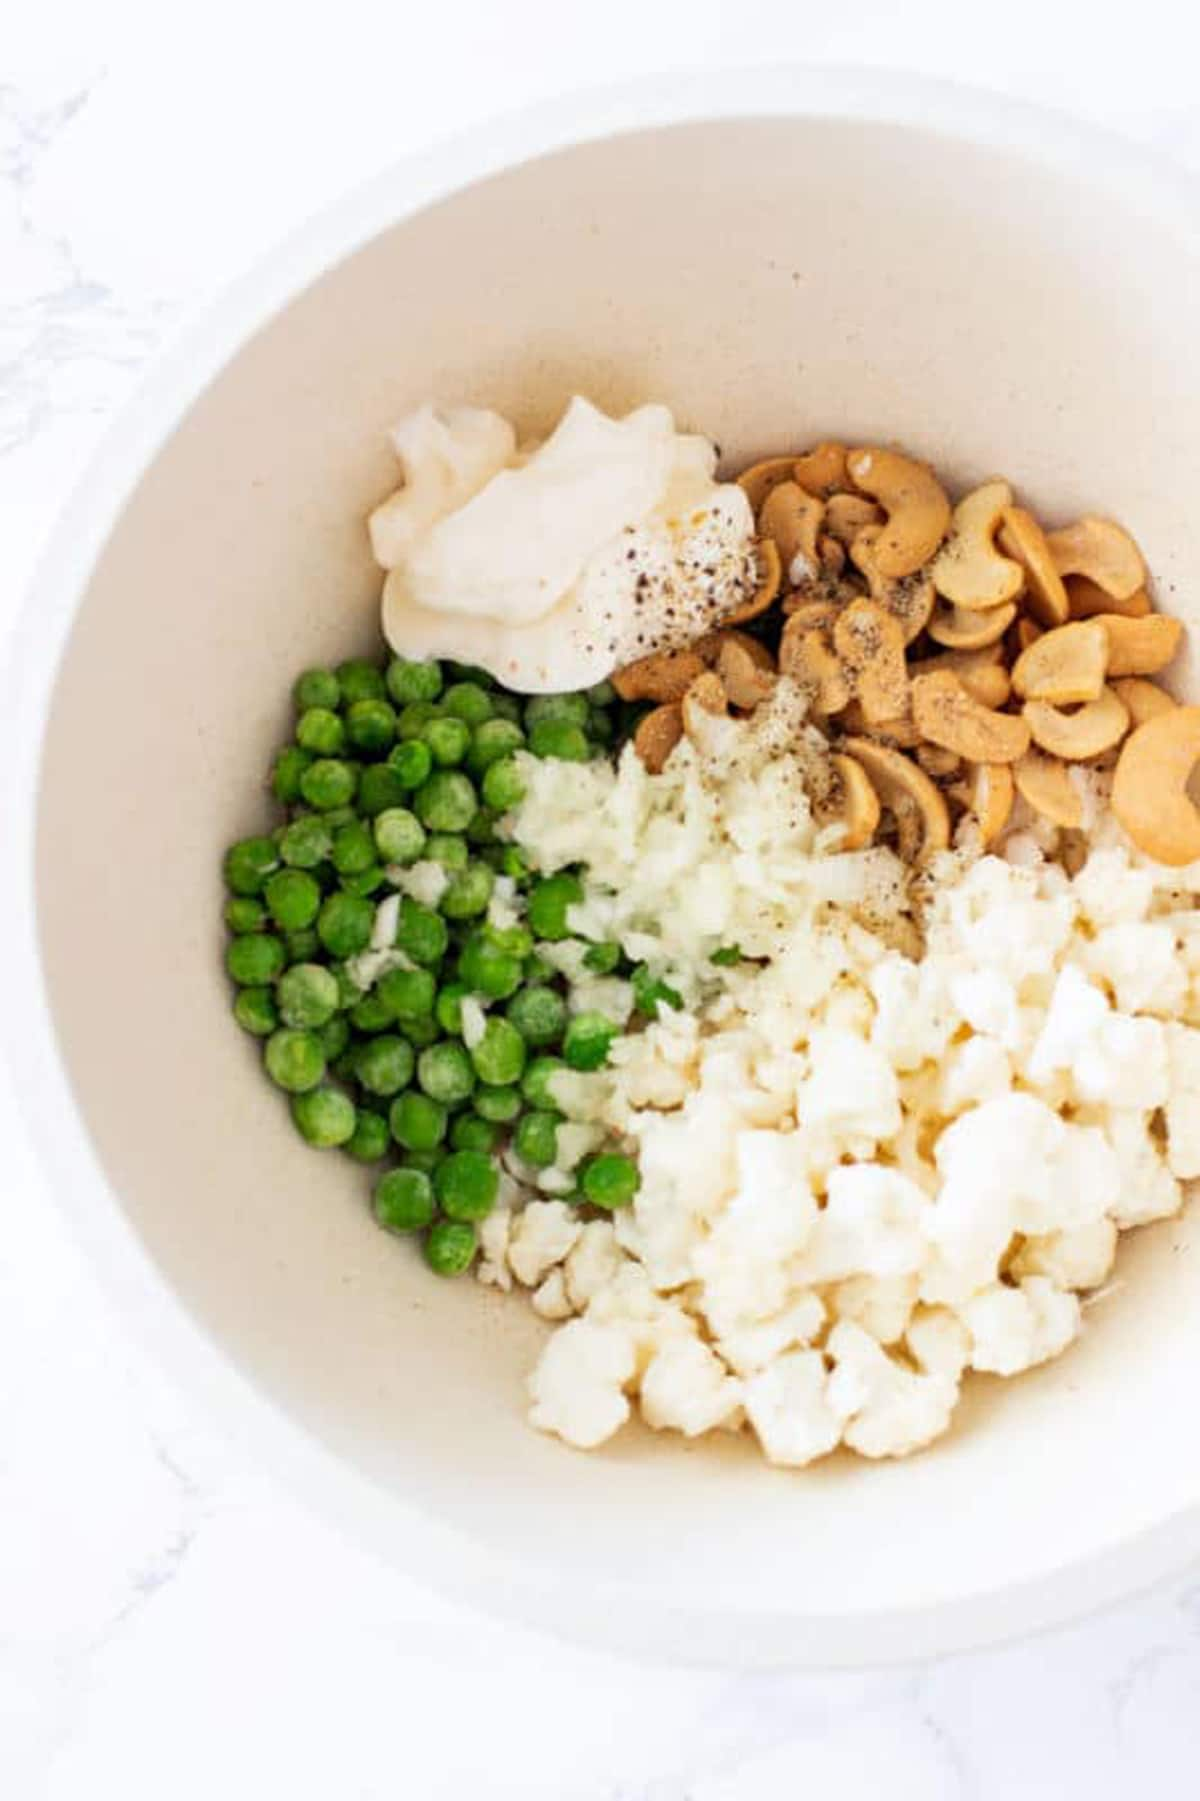 Bowl containing frozen peas, cashew halves, cauliflower, onion and mayonnaise topped with salt and pepper.